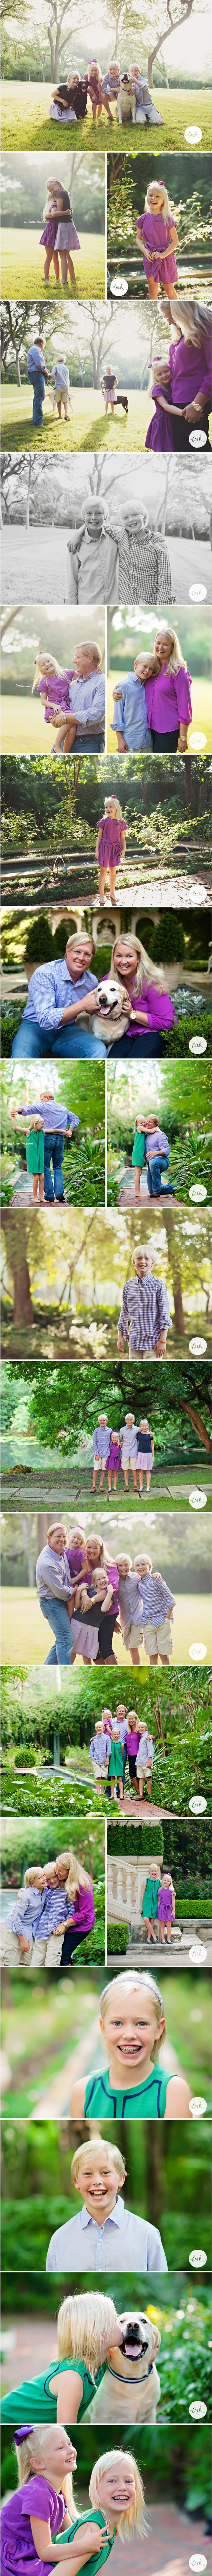 Oh this family - just love each and every one (including the furry ones)! | Lark Austin Family Portraits